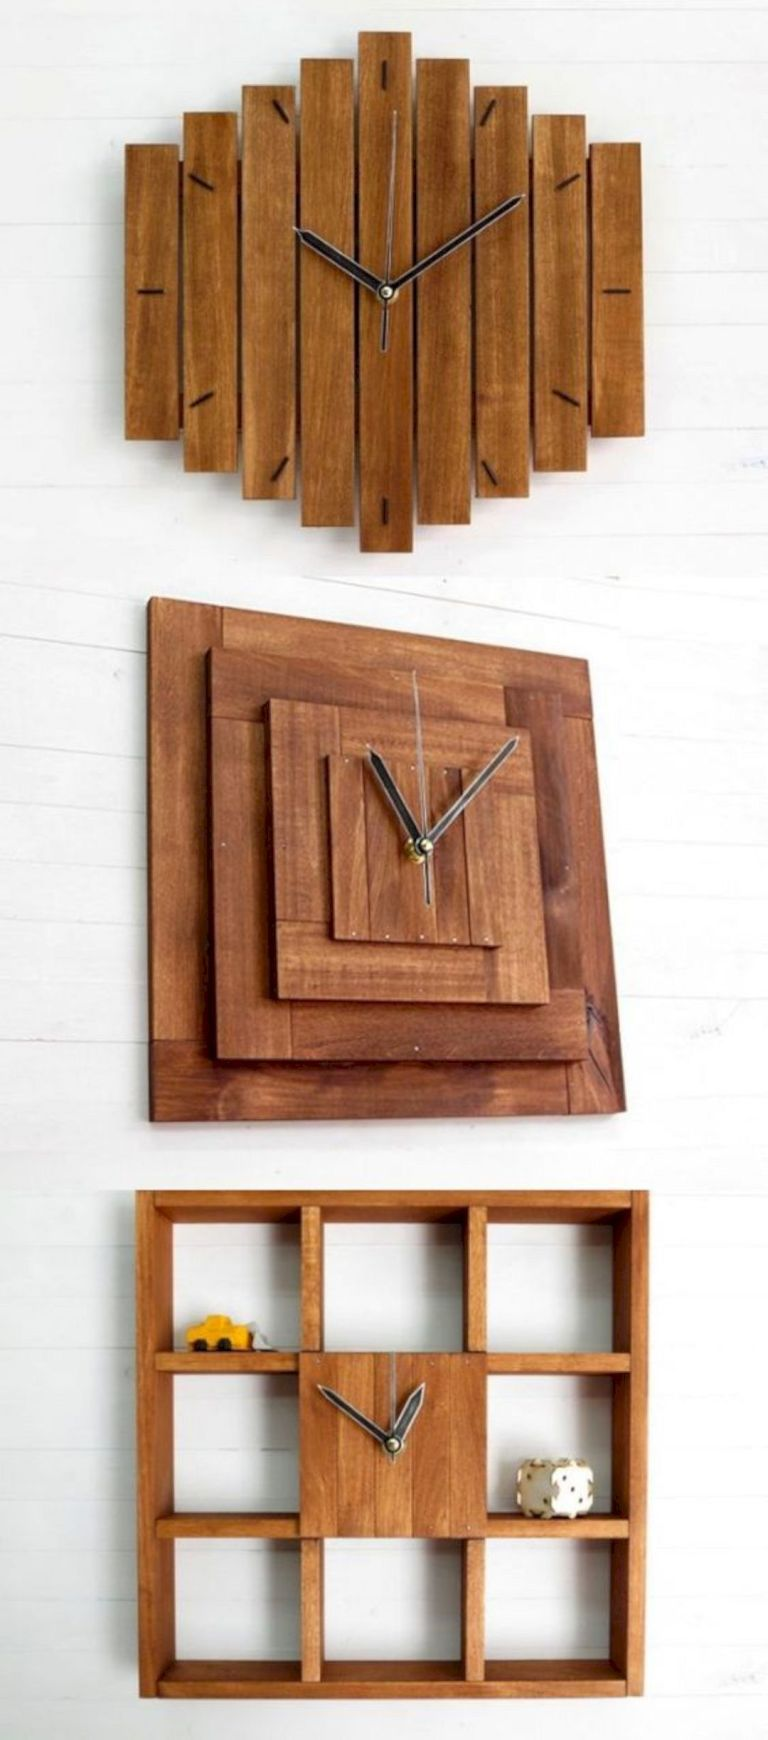 15 home decoration ideas to bring out a rustic flair on wall art decor id=85129